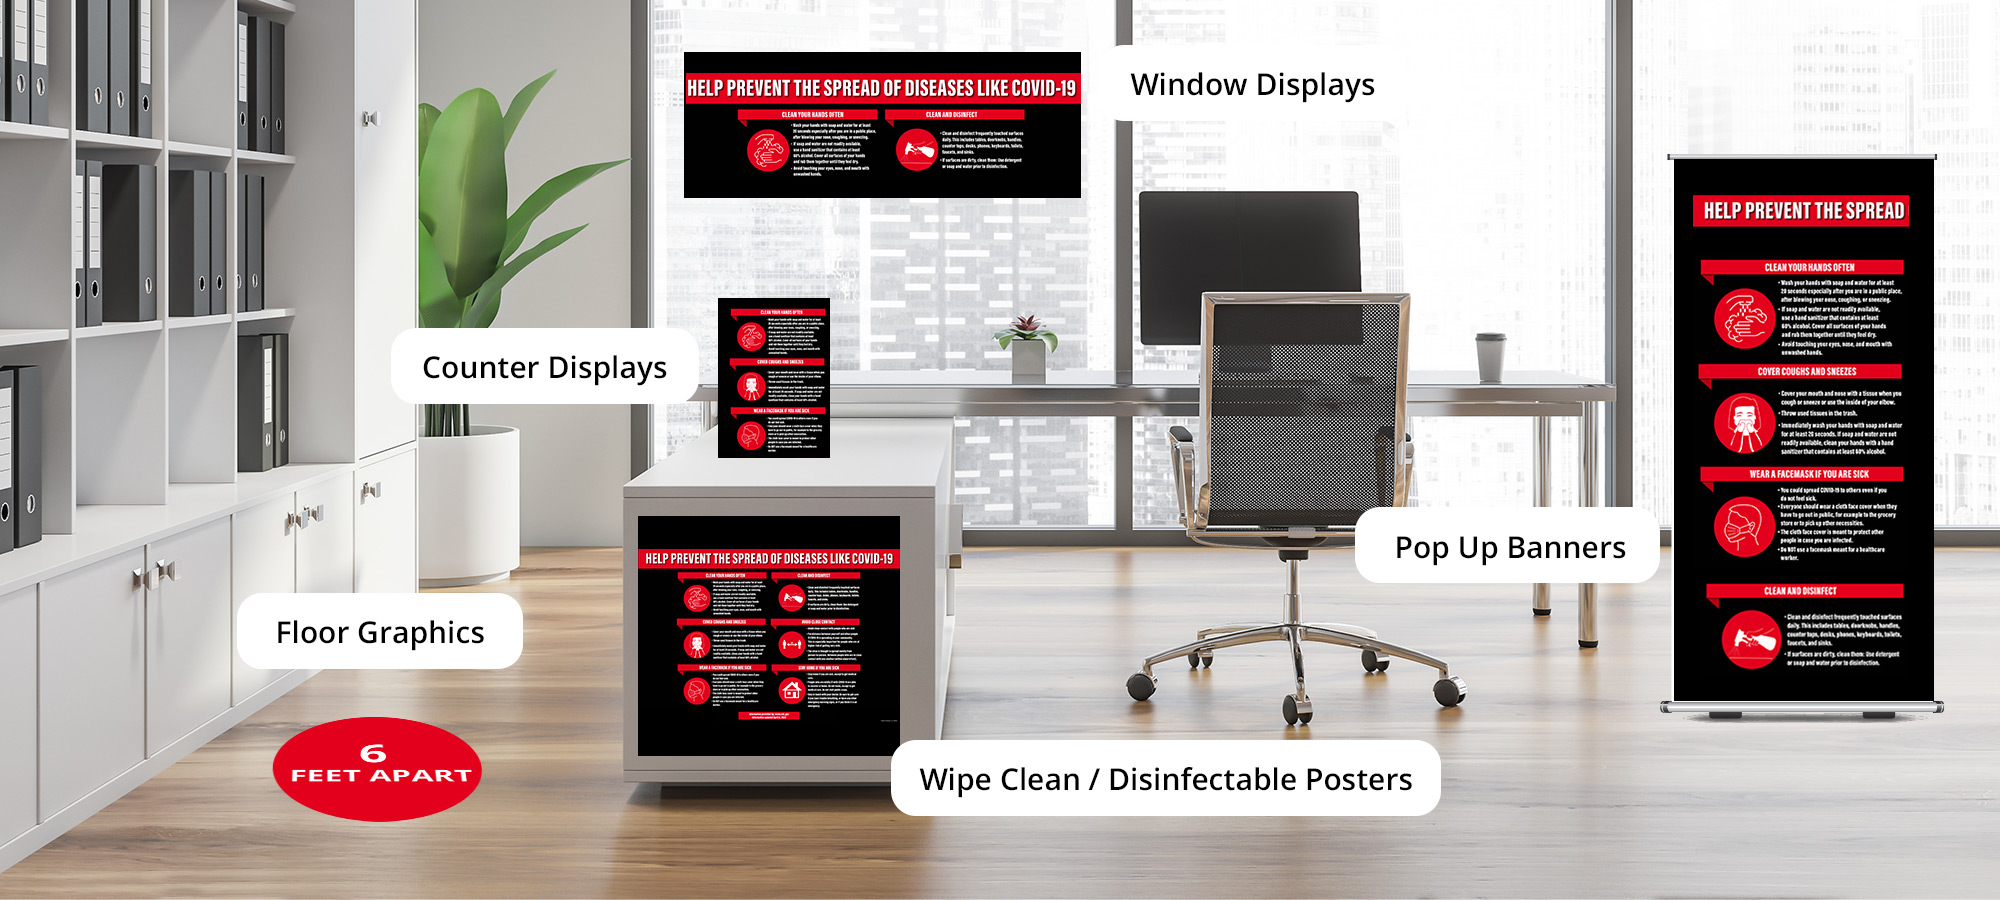 Emergency Signage Solutions durable posters, floor graphics, counter displays, window display and pop up banners syracse ny